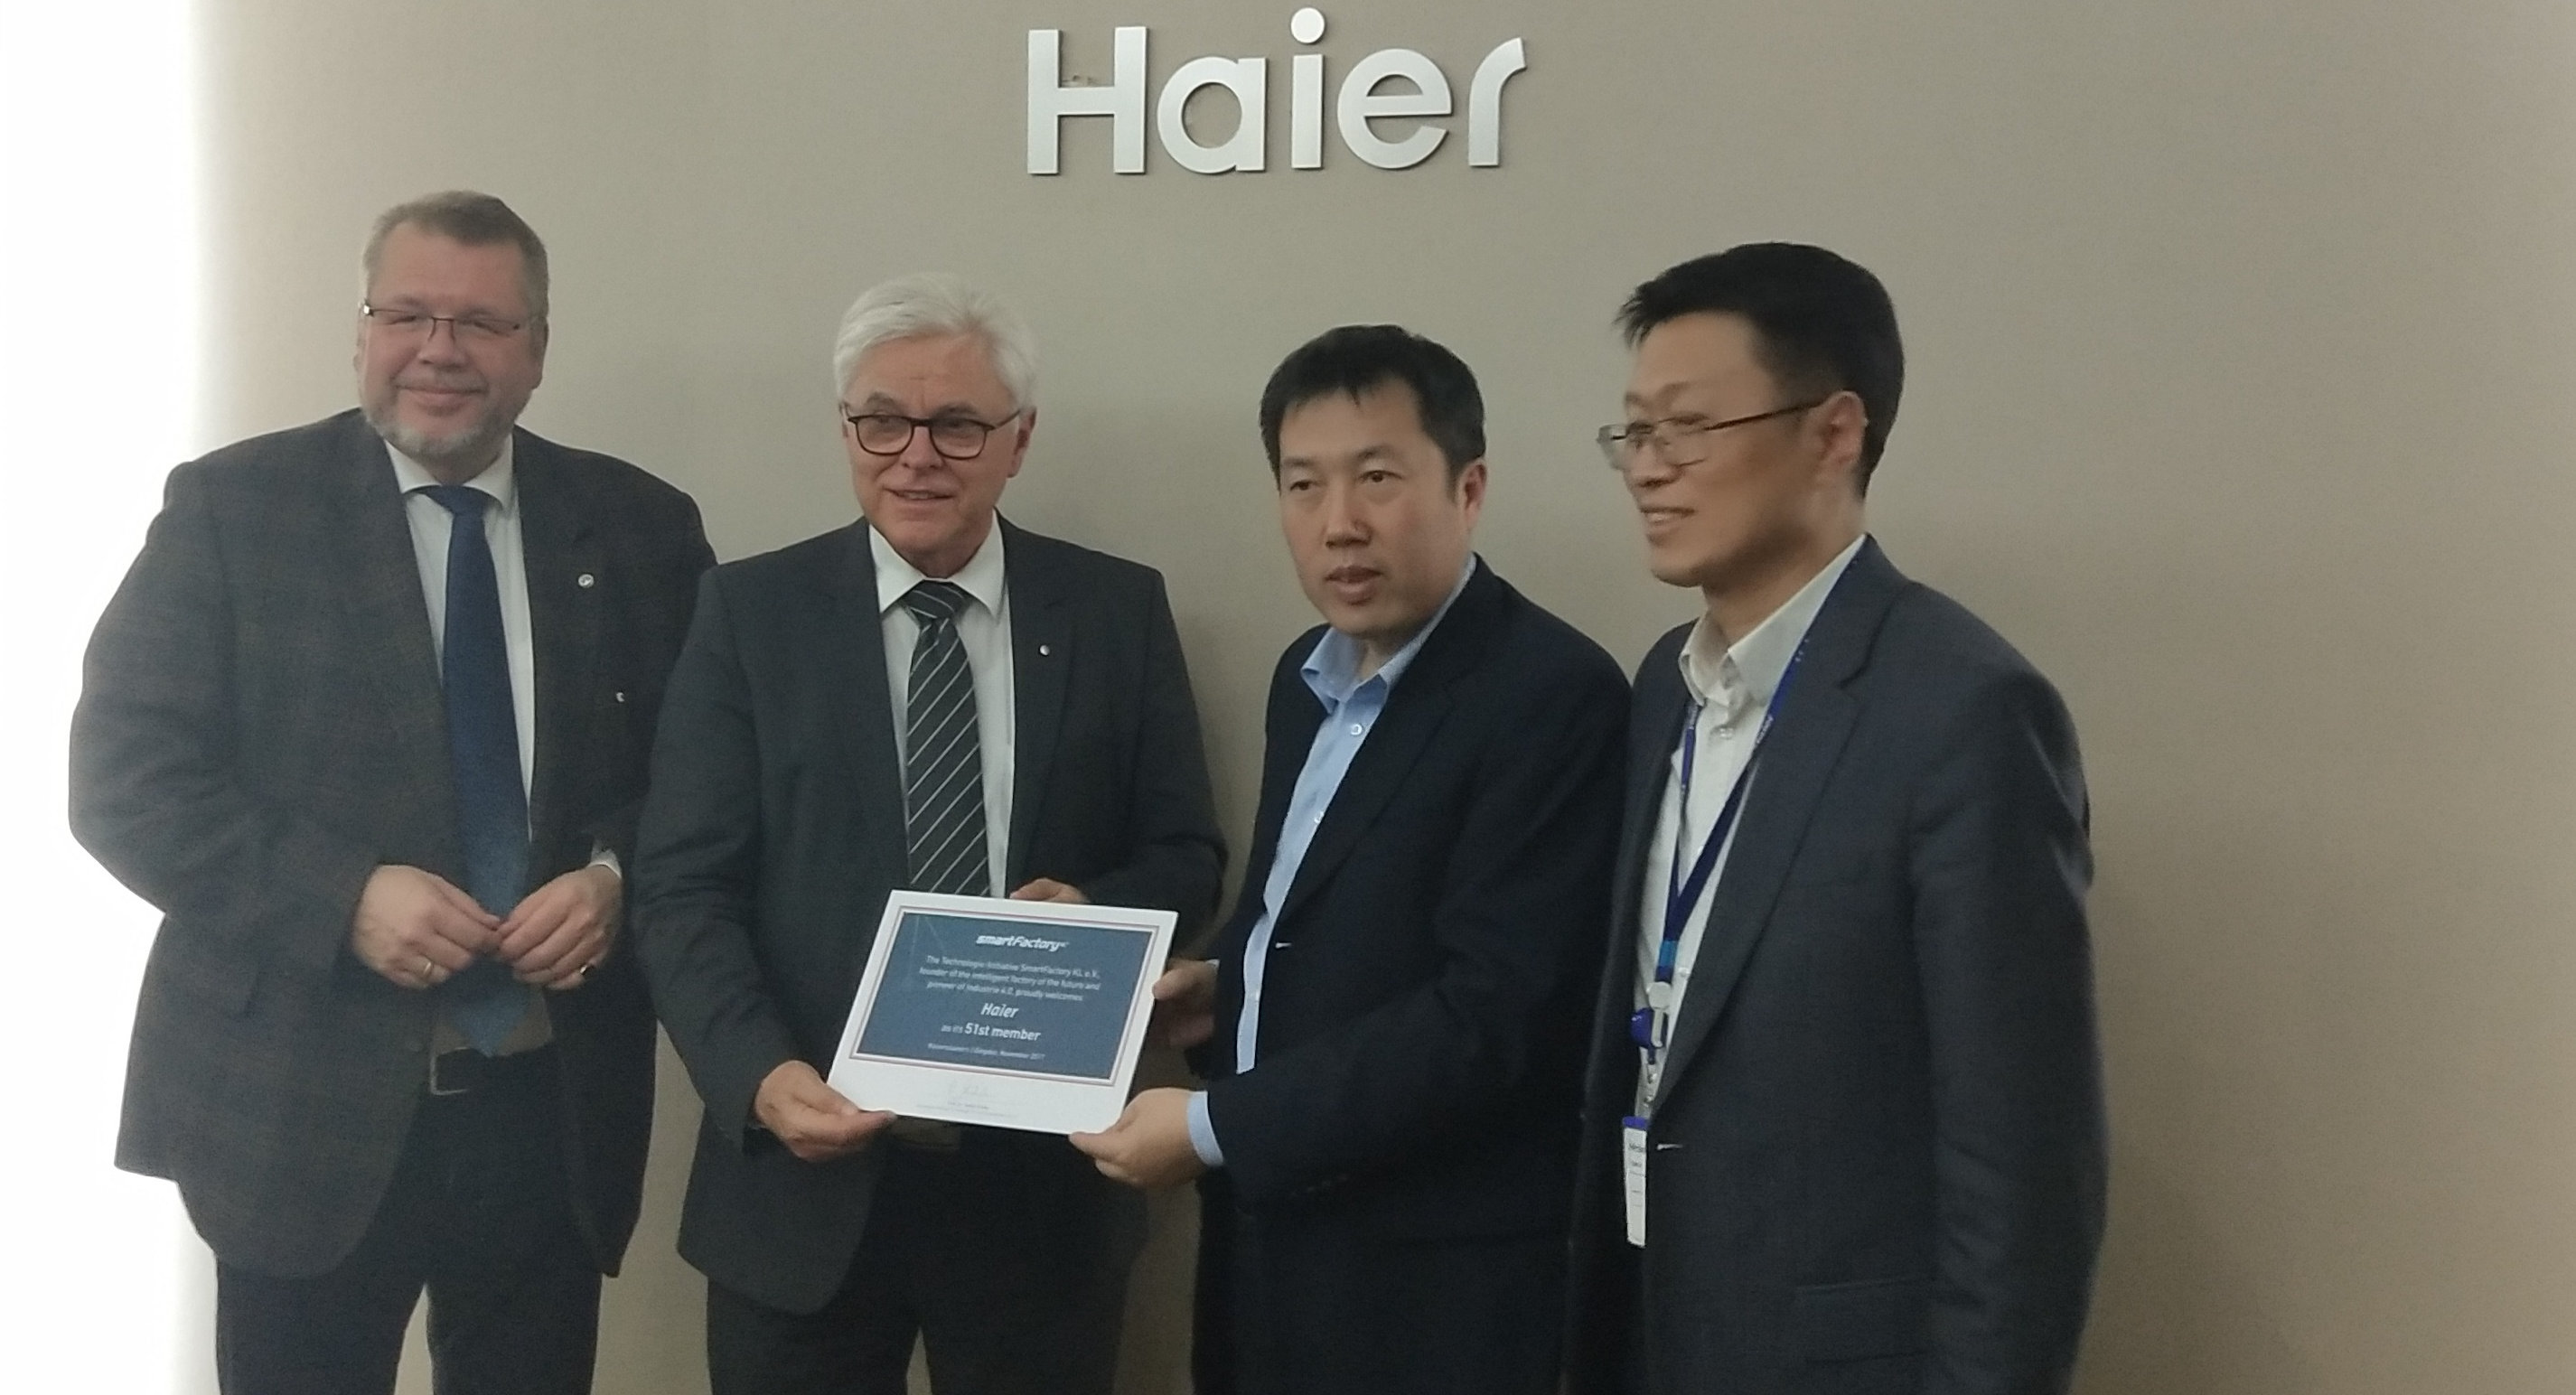 Haier new member of SmartFactory-KL